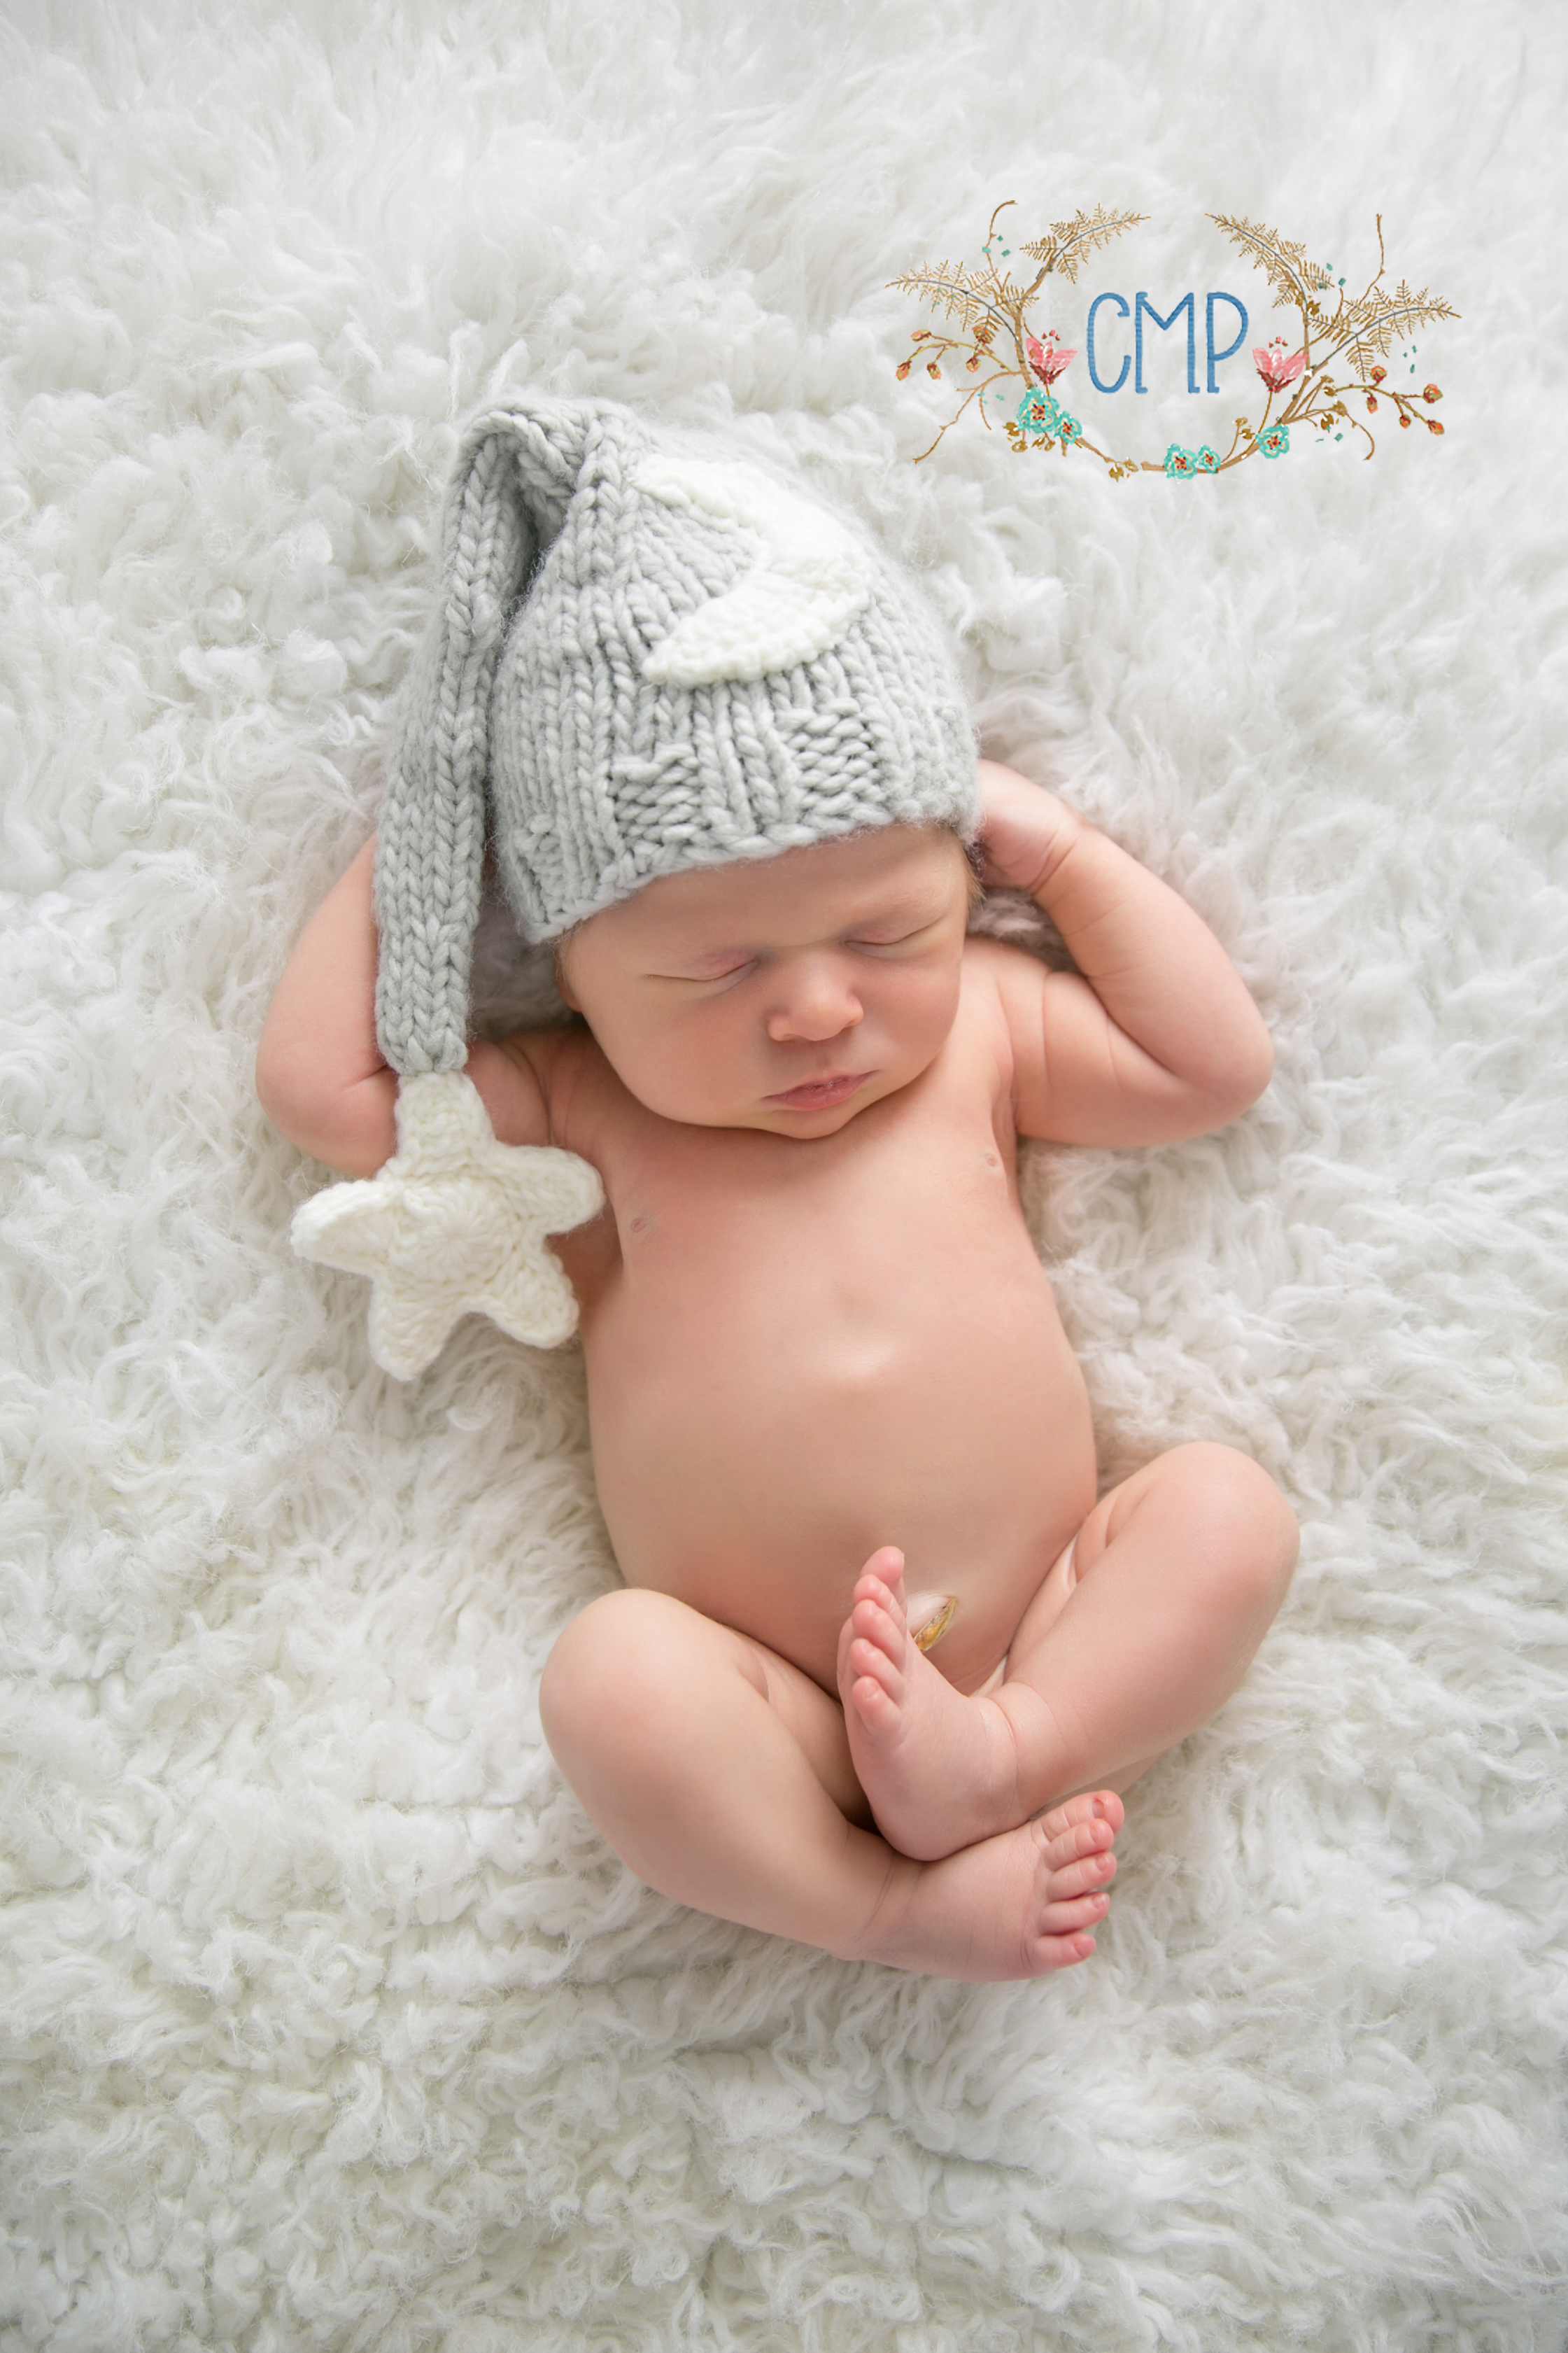 25_Sanford_Luke_newborn_761A9971-Edit.jpg